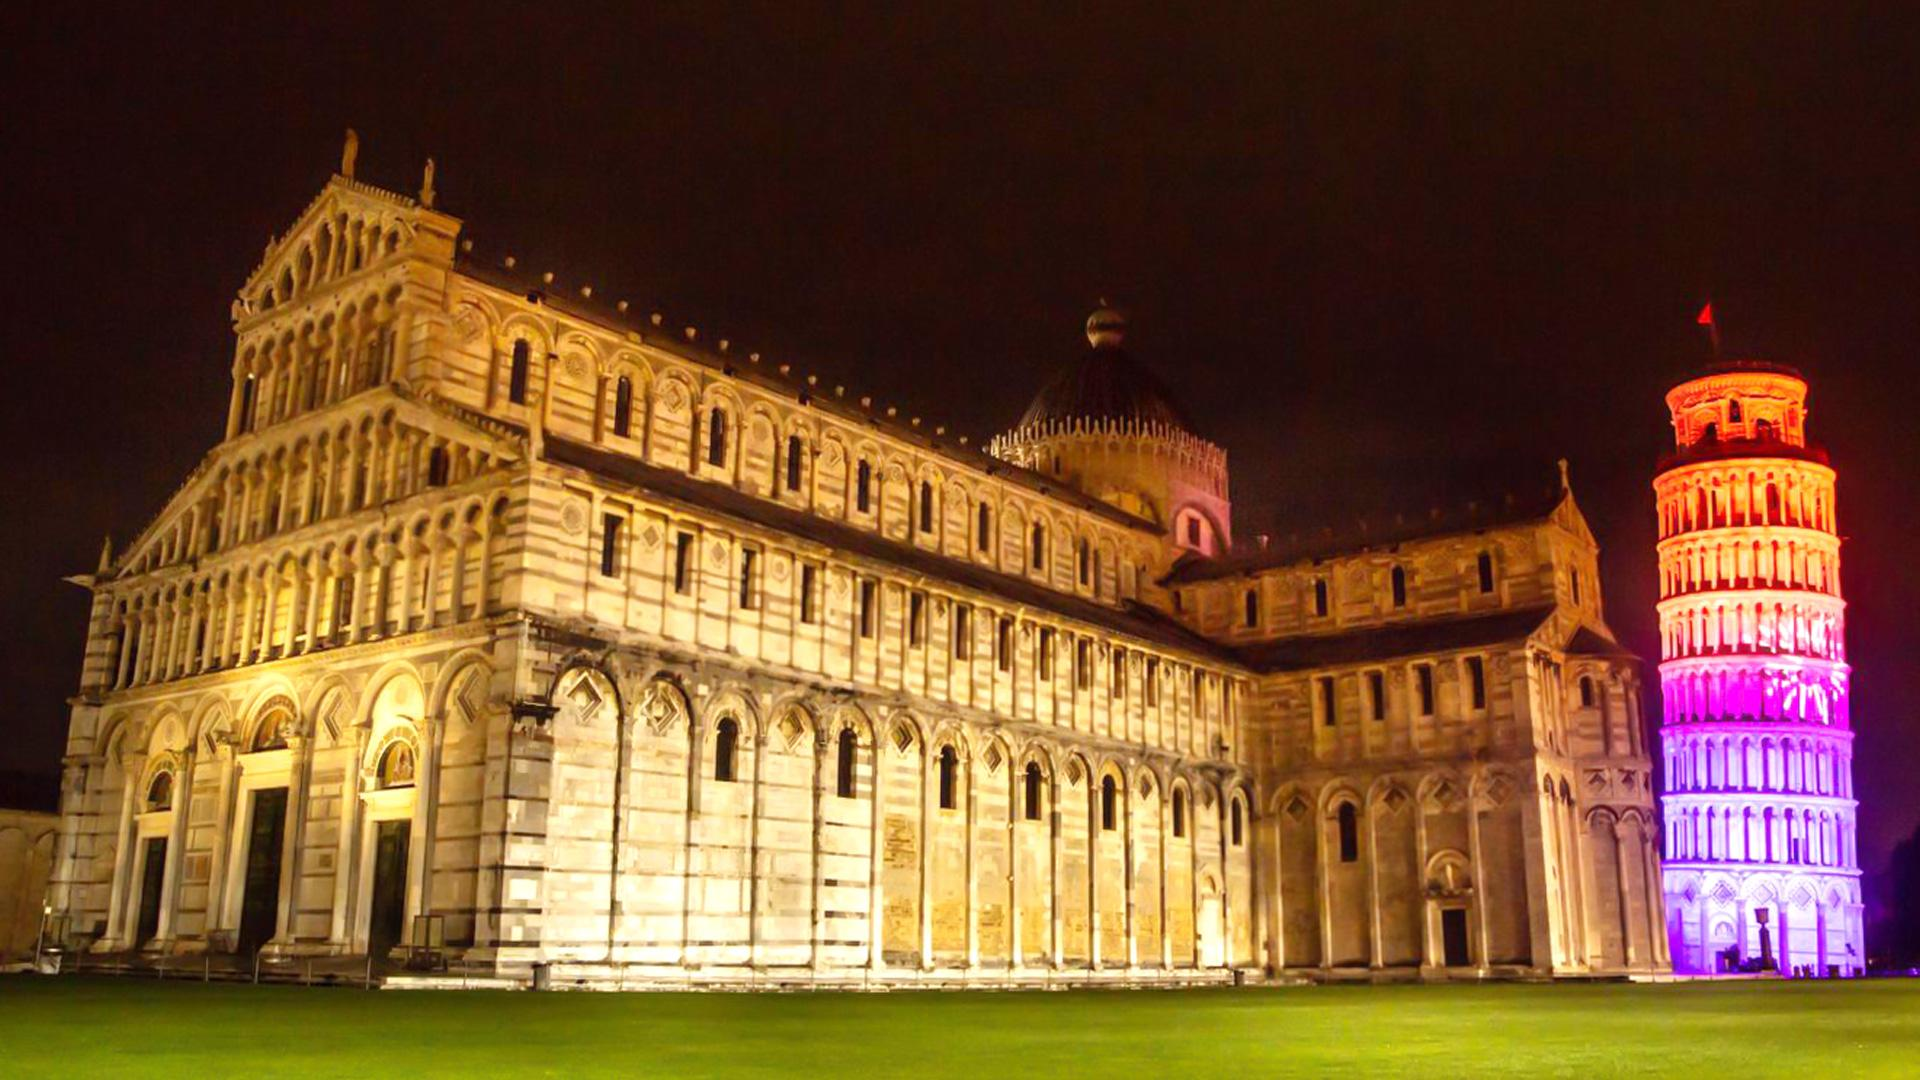 PROLIGHTS used to light up Italian landmarks